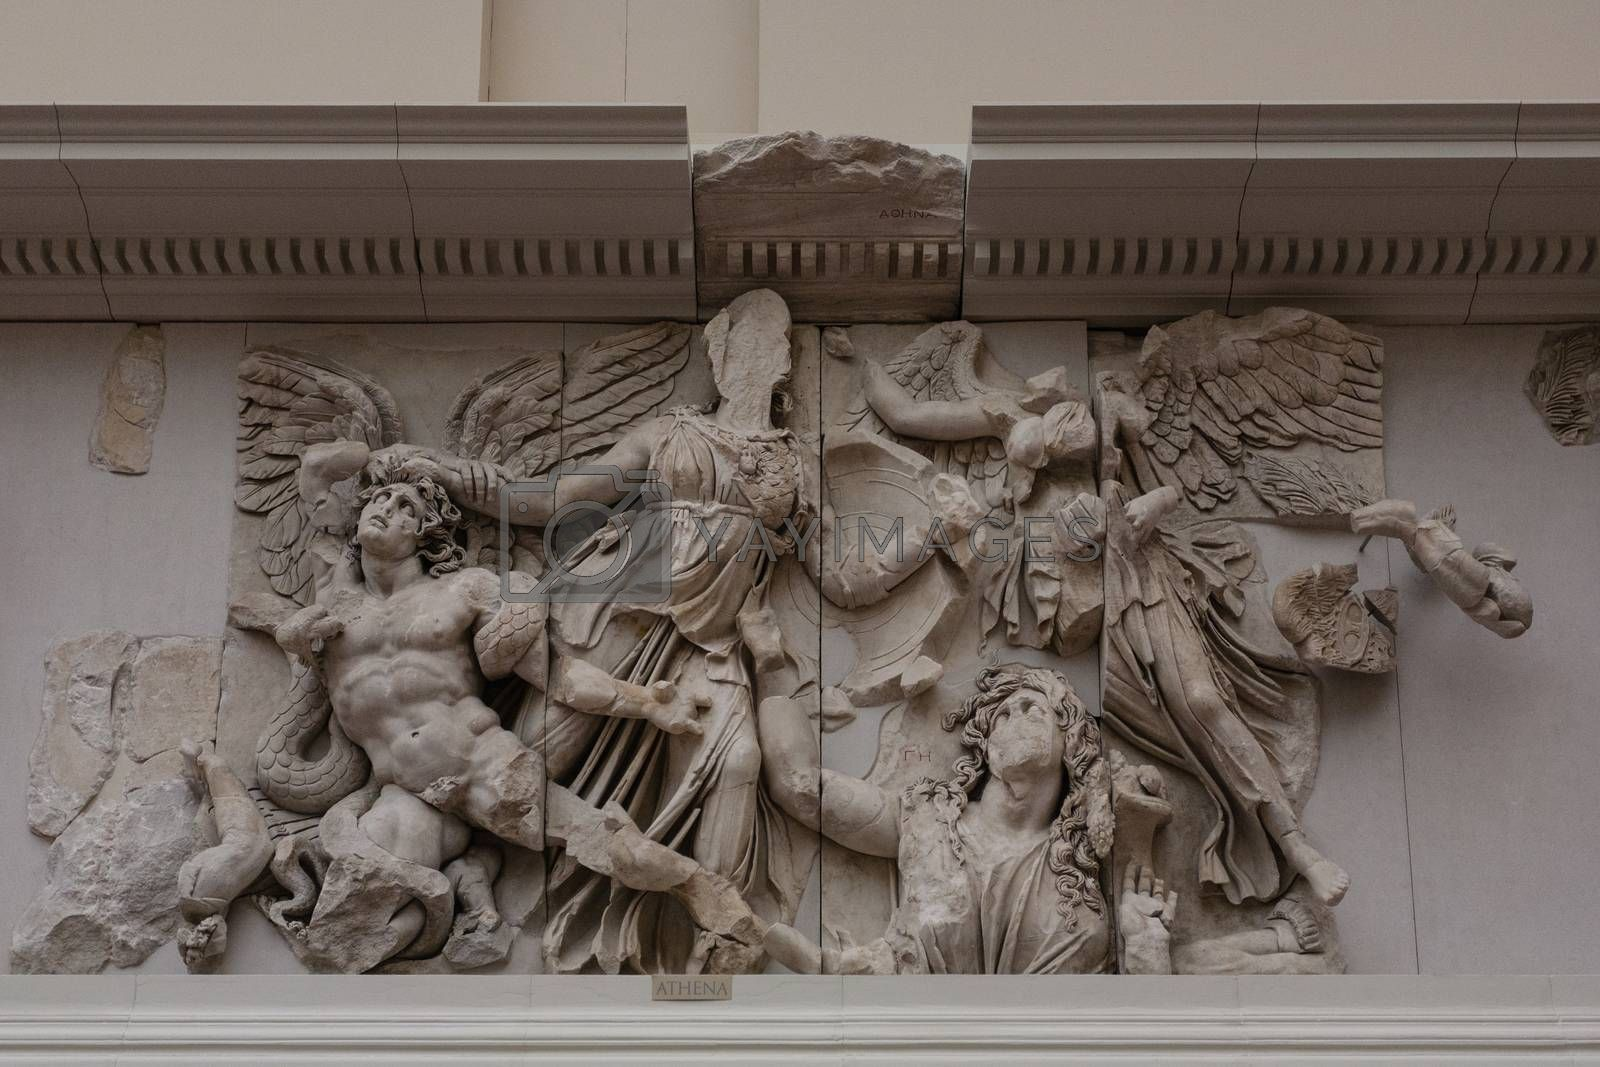 Detail of the Pergamon altar of the greek temple of pergamon in the Pergamon museum of Berlin